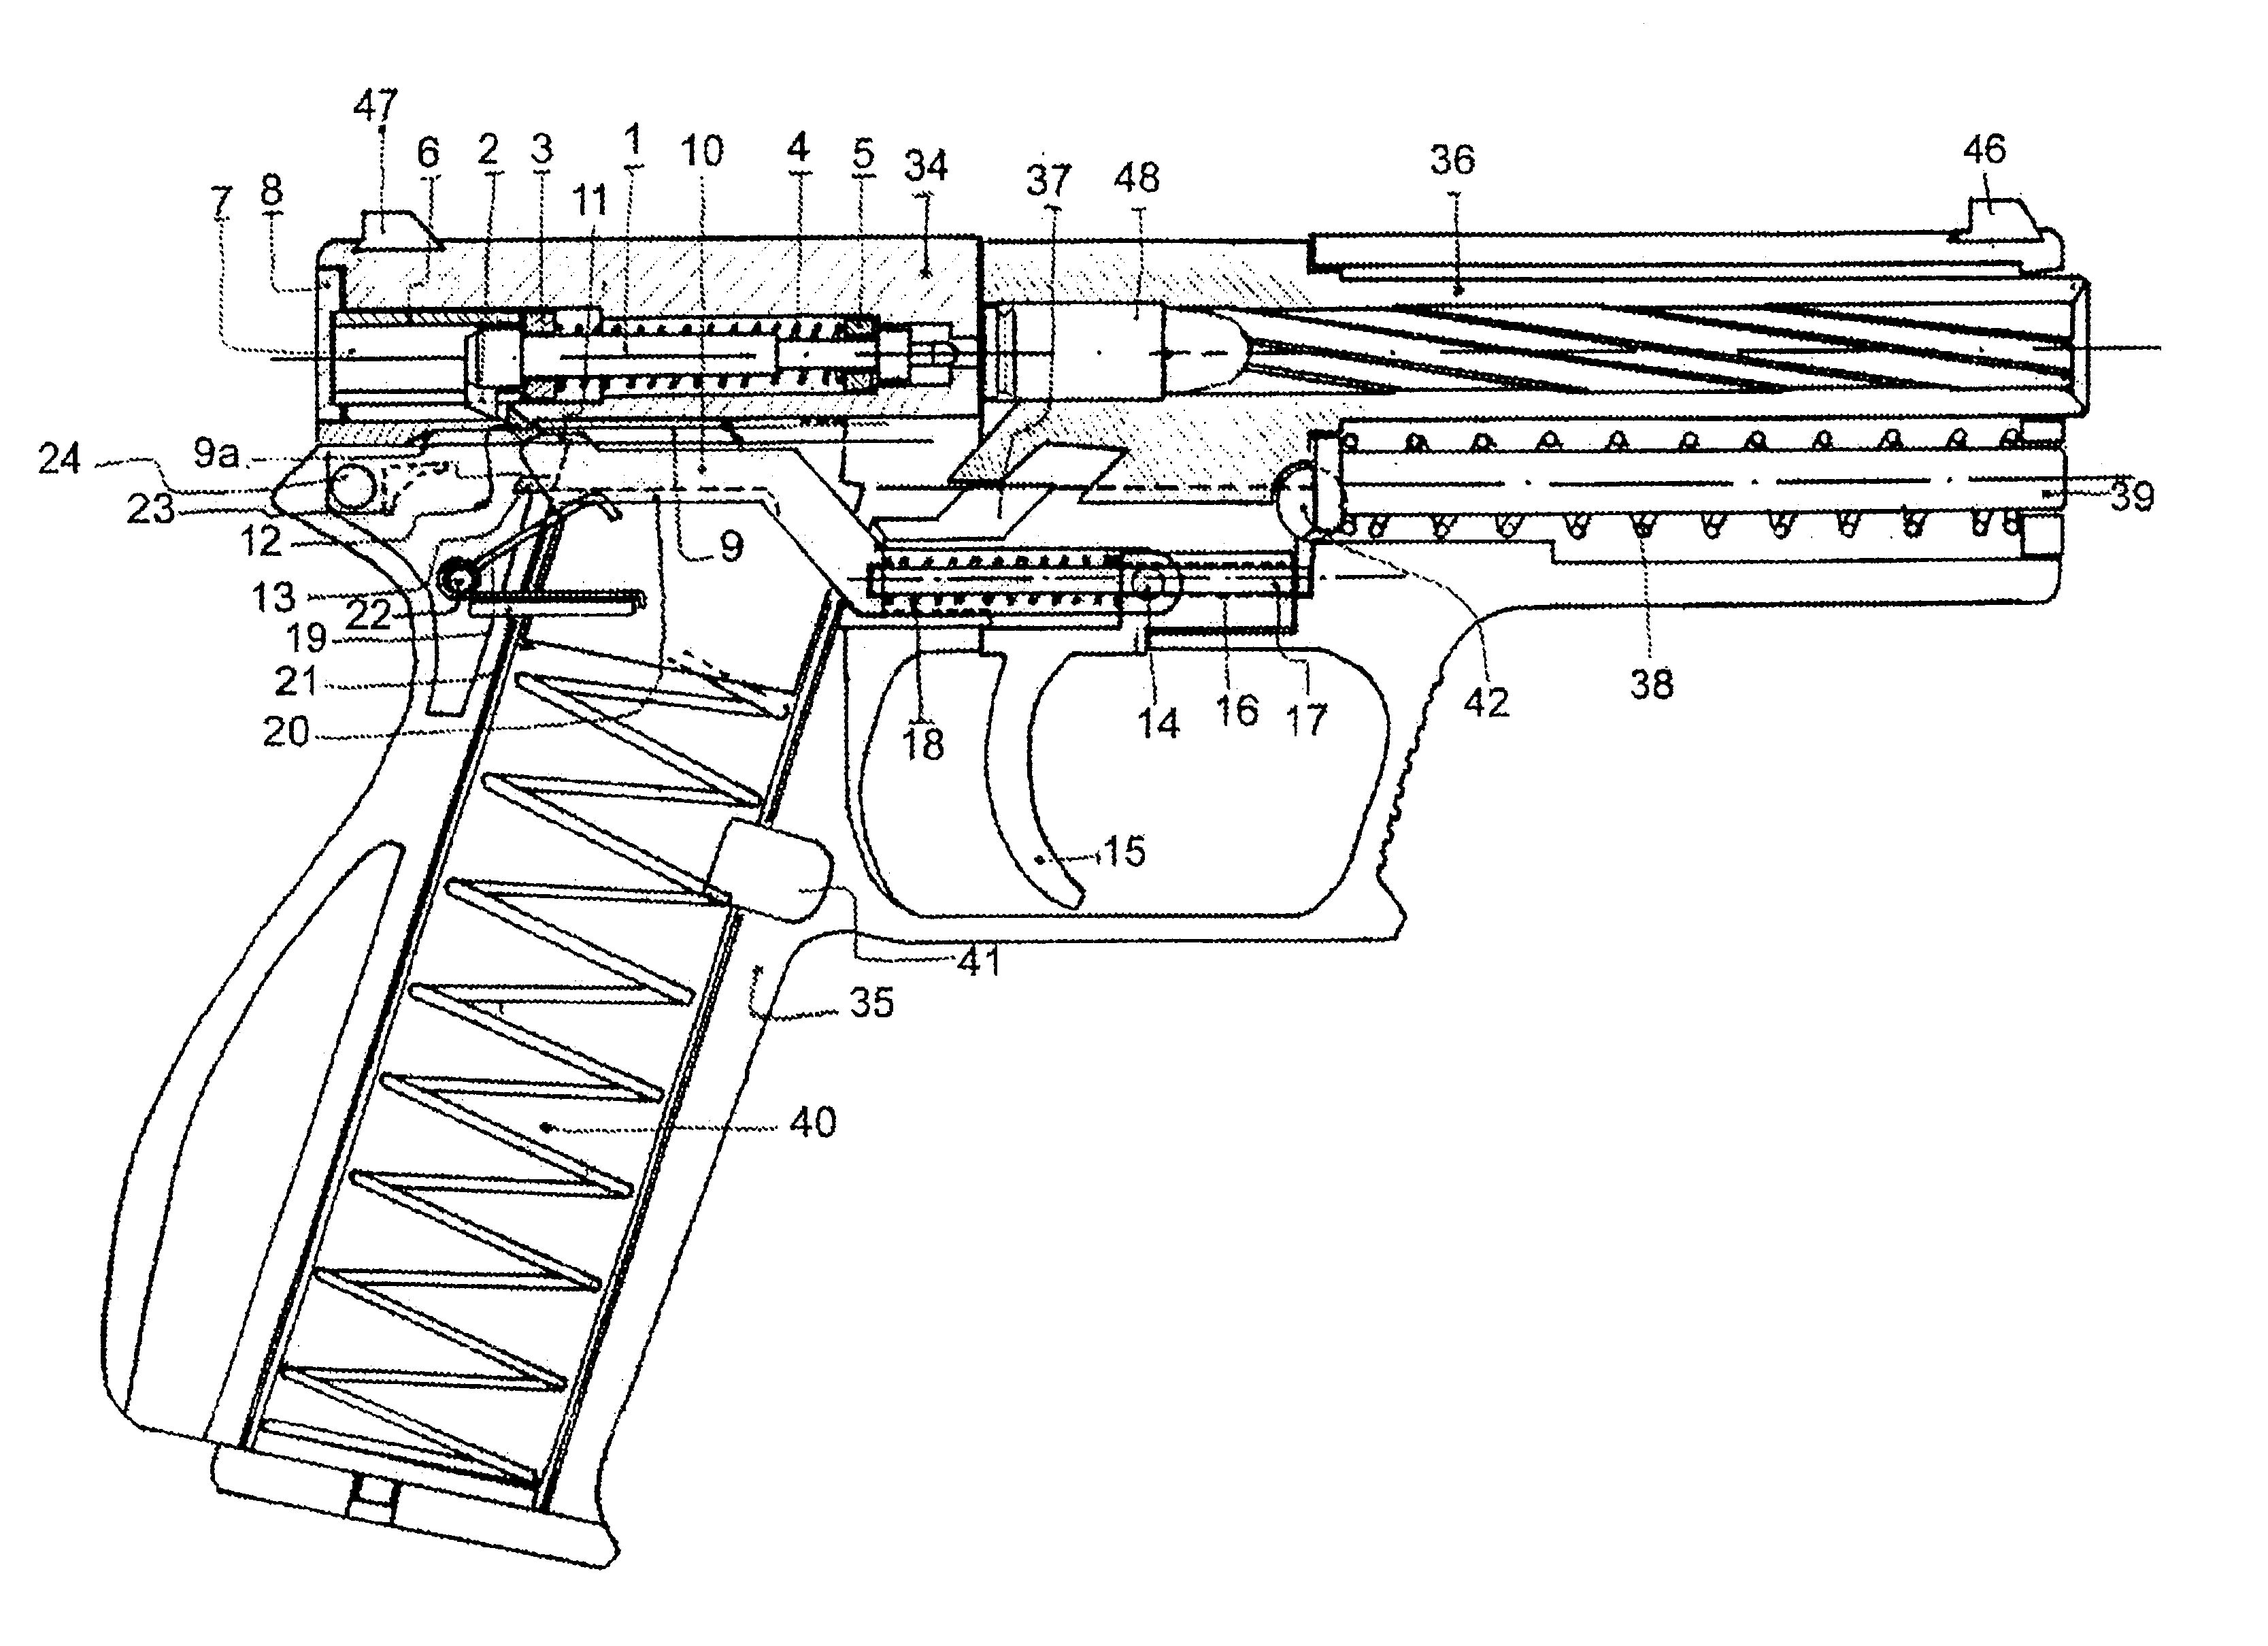 hight resolution of striker trigger mechanism for automatic and semi automatic firearms